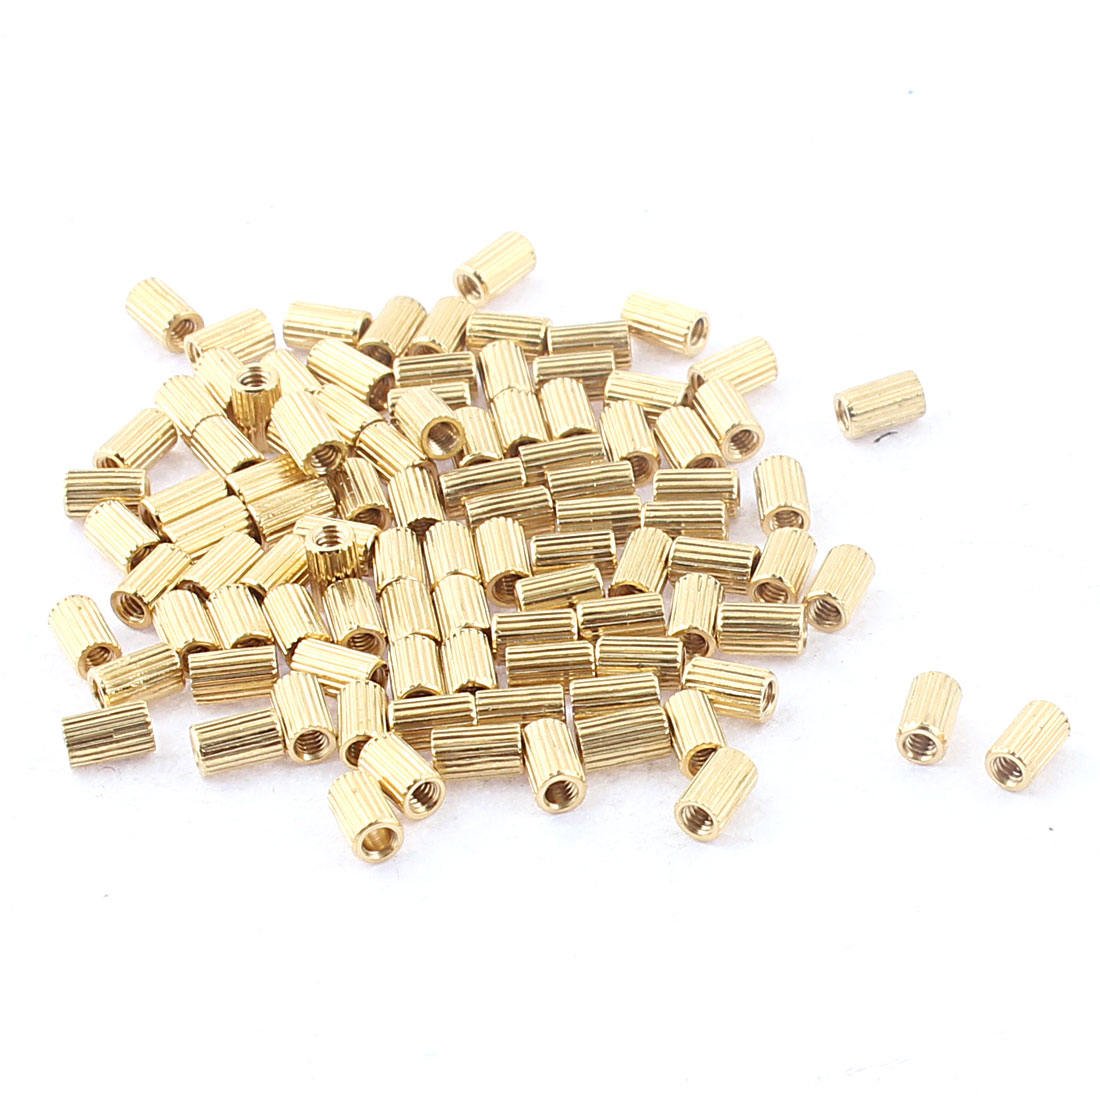 100Pcs M2 x 5mm Female Thread Cylindrical Knurled Brass Stand-off Standoff Spacer Pillar for Mother Board